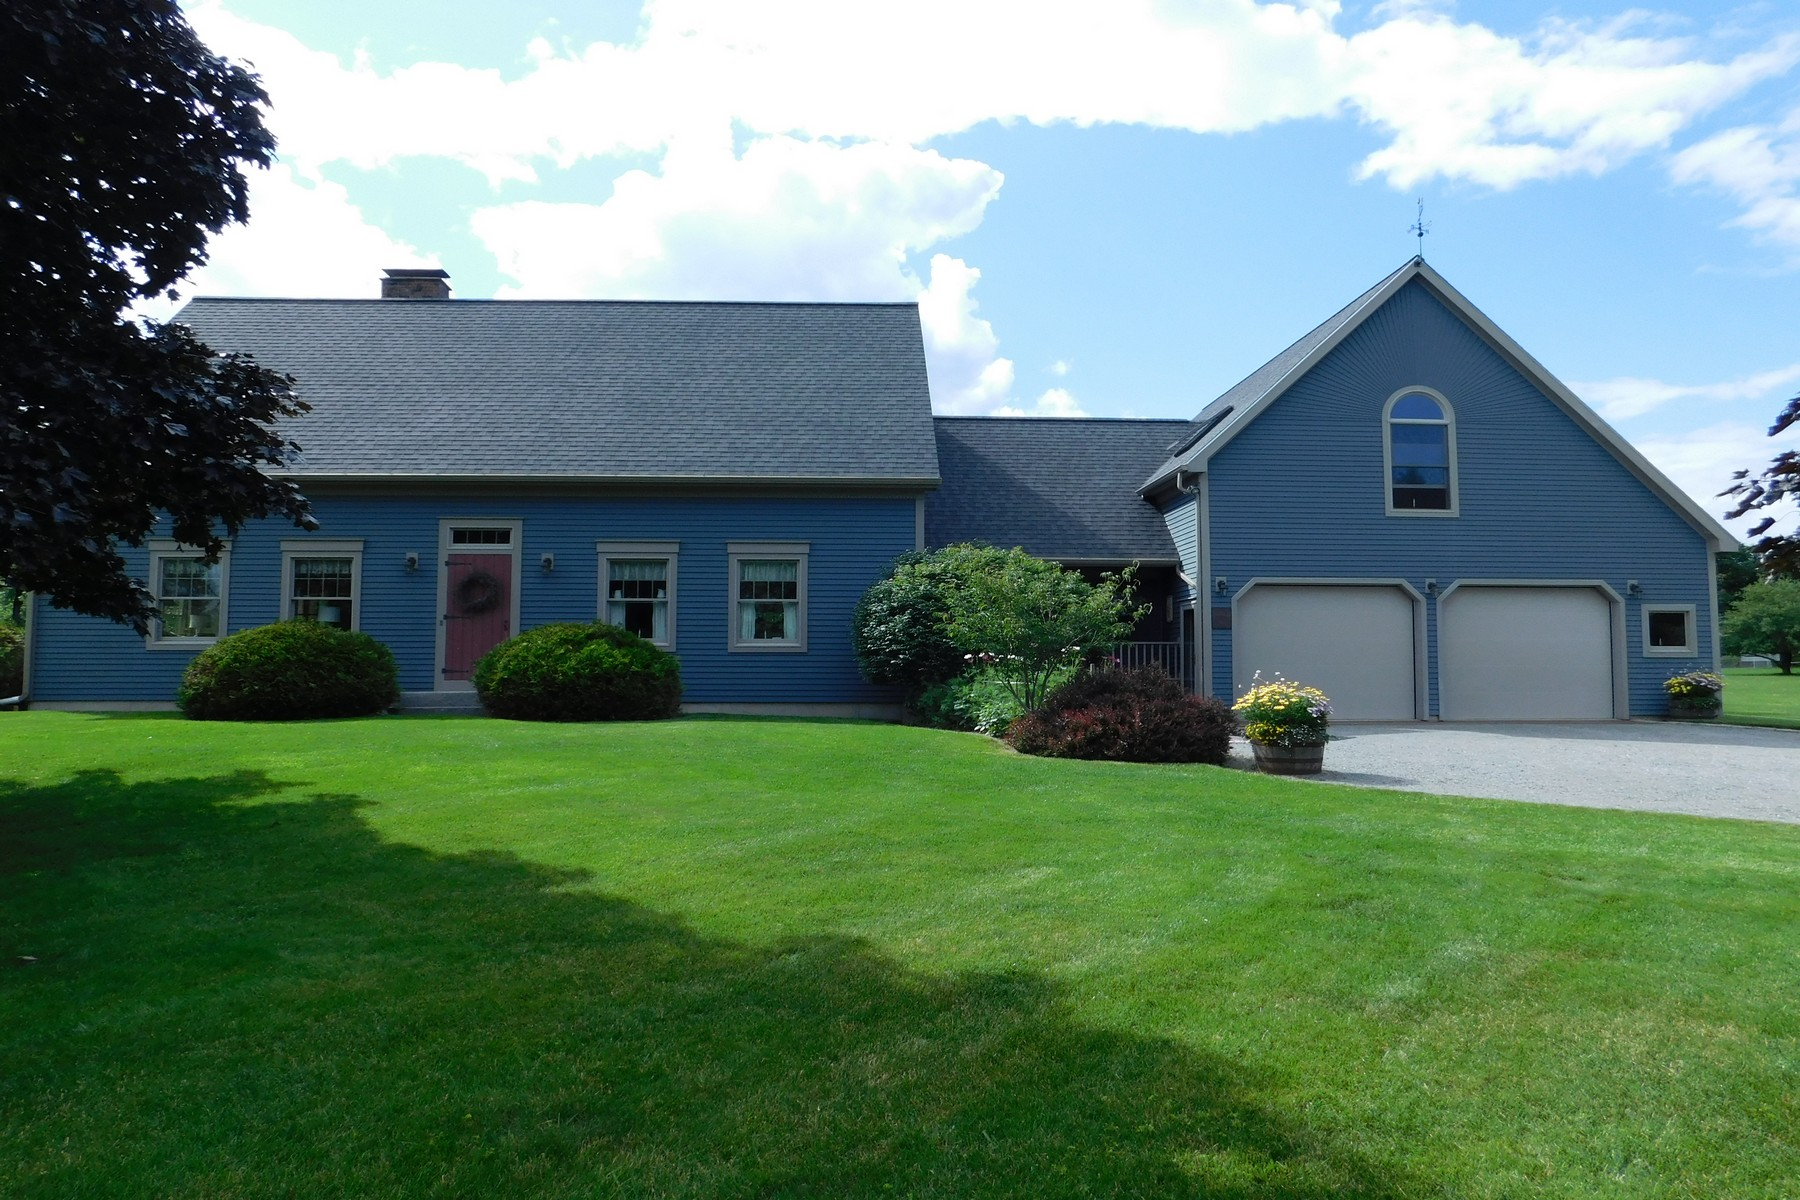 Single Family Homes for Sale at 44/58 Crogan Road Hermon, Maine 04401 United States